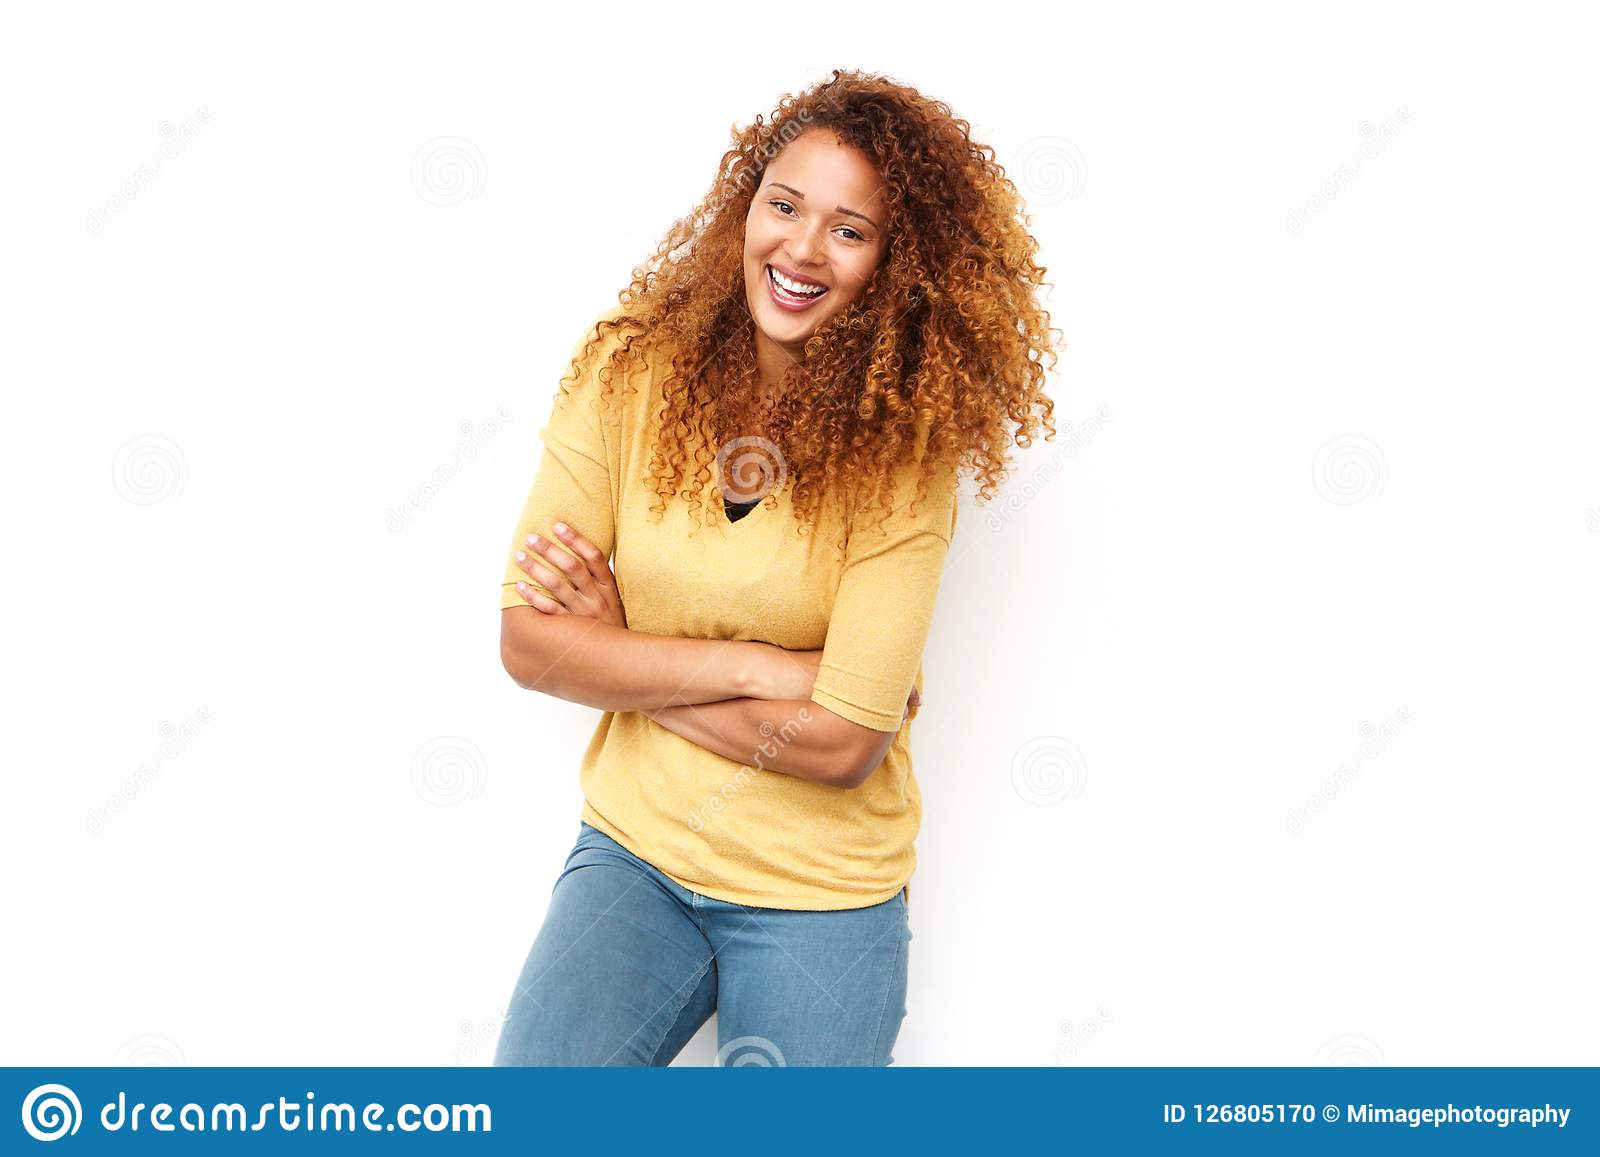 Beautiful young woman with curly hair laughing with arms crossed against white background